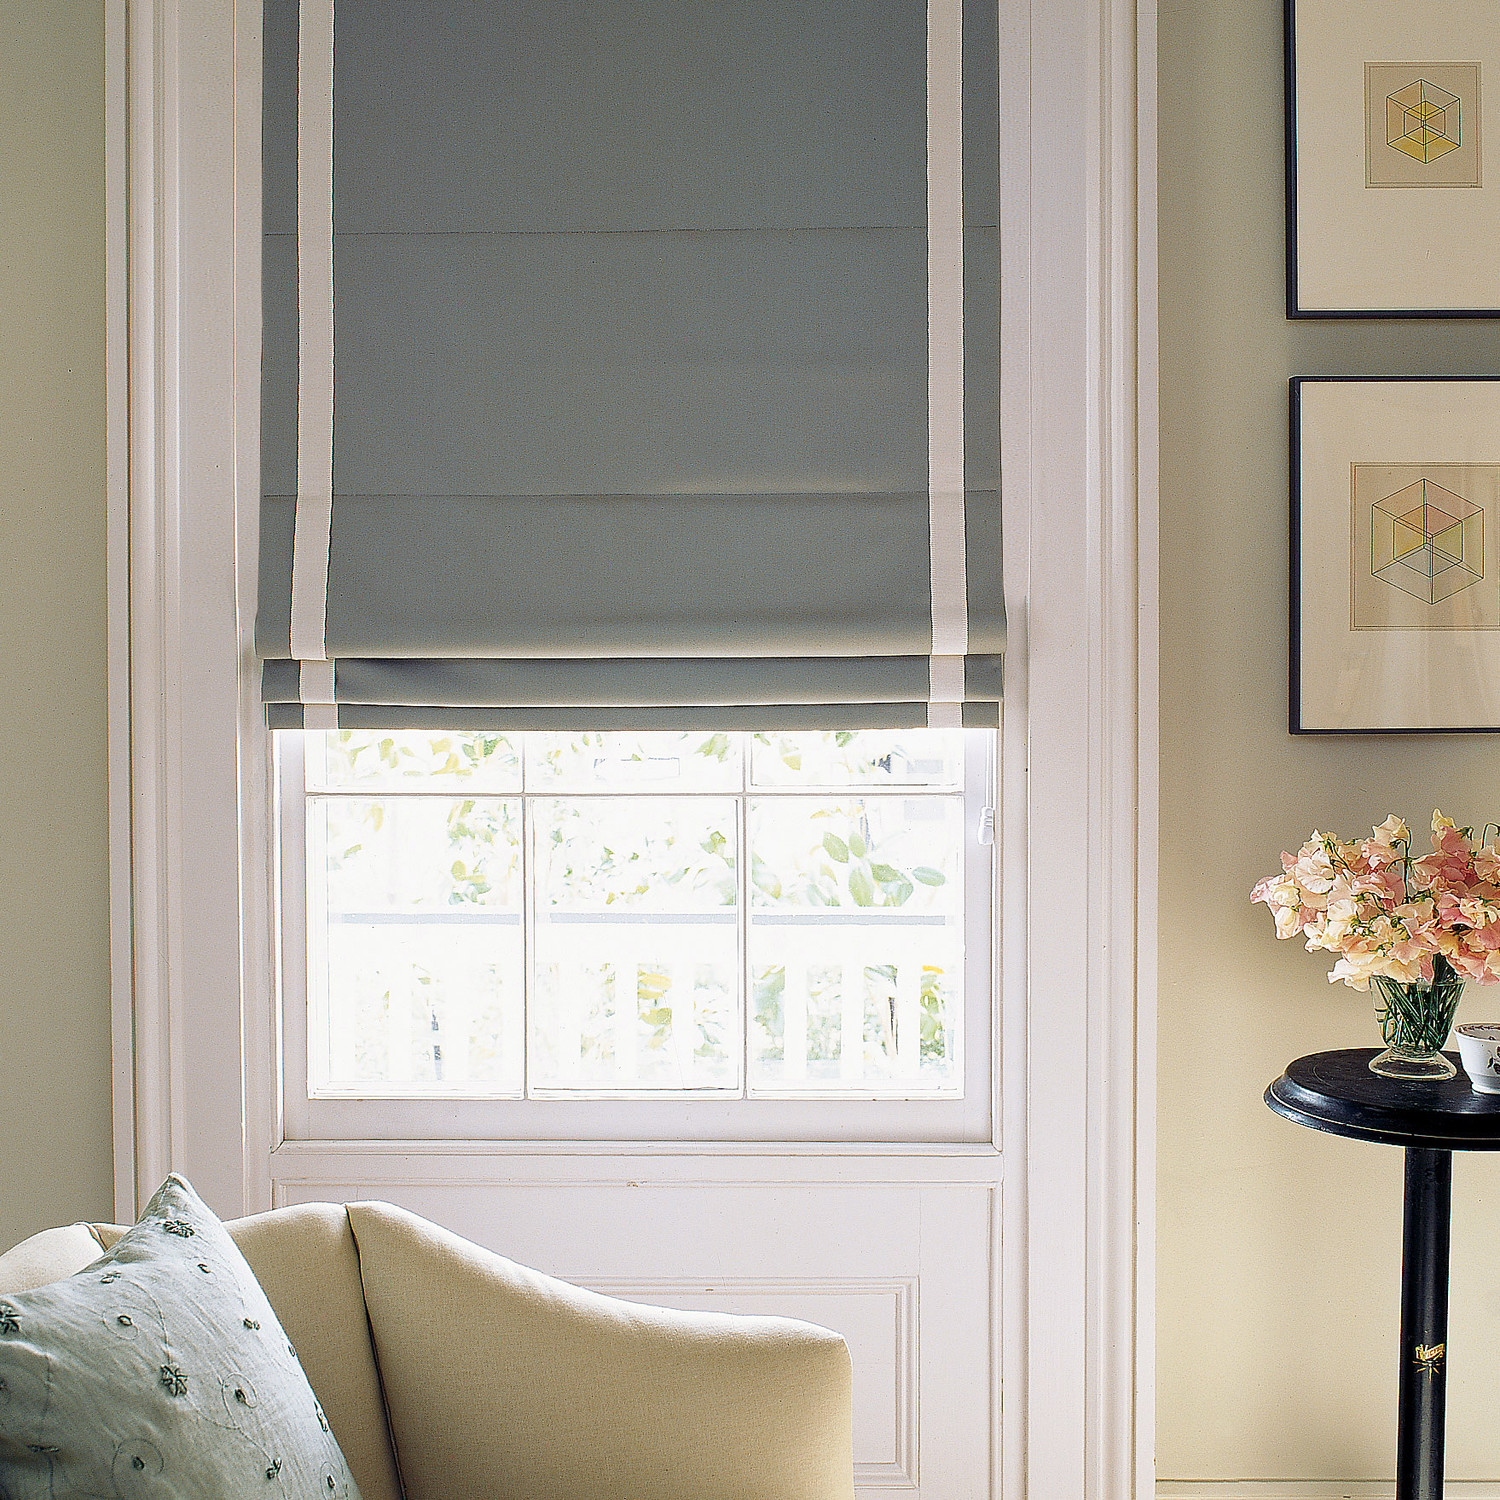 Diy Roman Shades Easy How To Make Roman Shades In Three Different Styles Martha Stewart